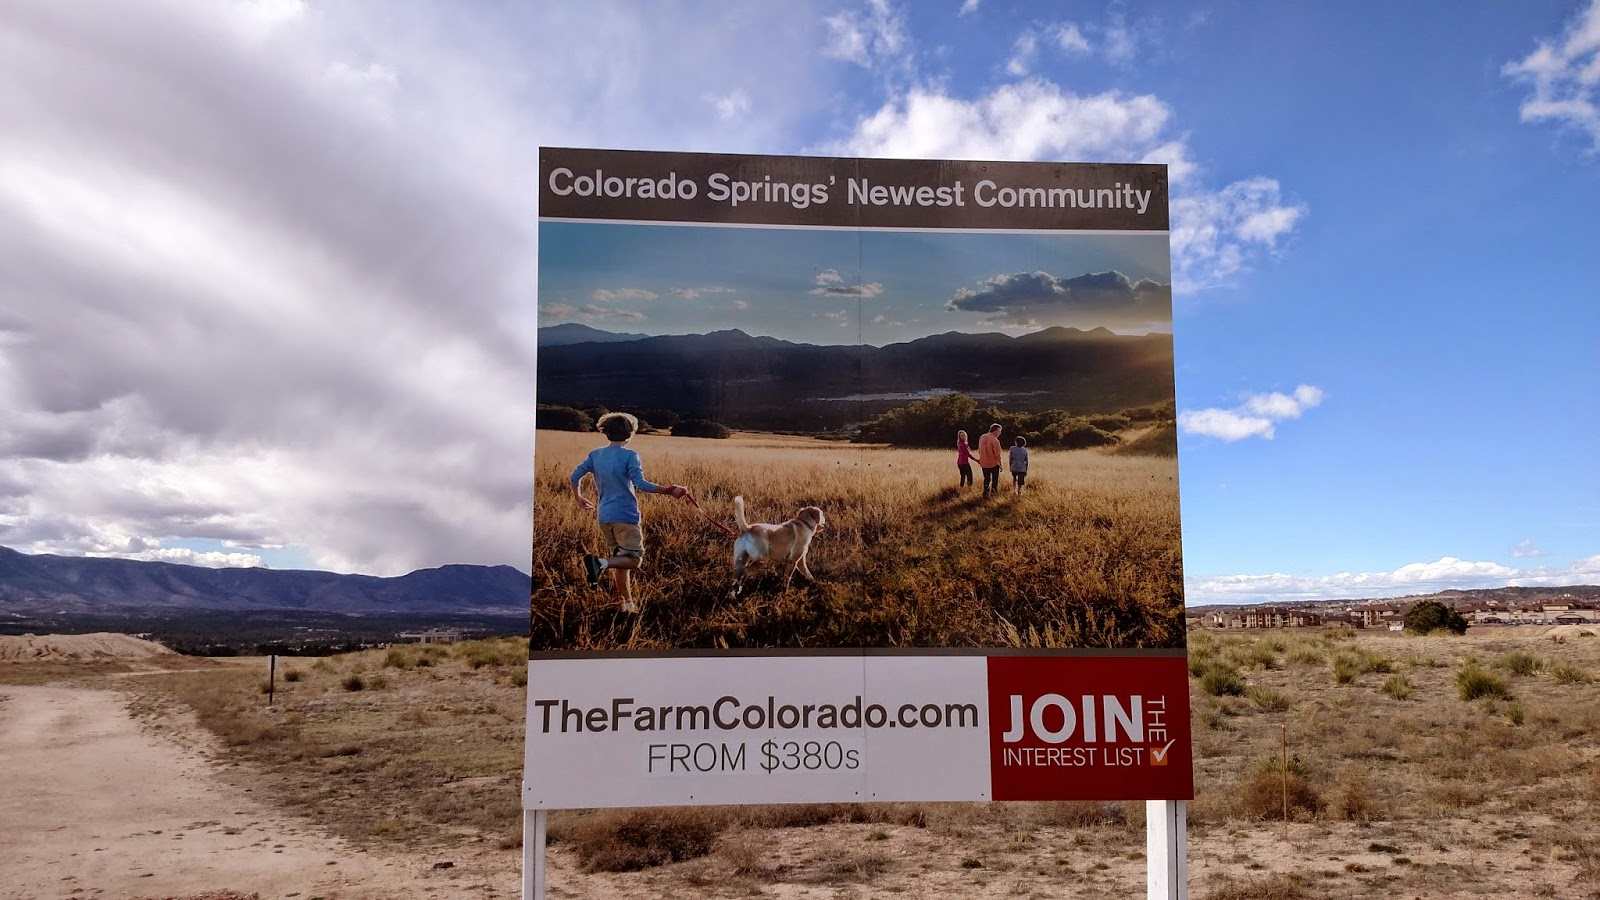 Get more info on this new community in Colorado Springs - The Farm